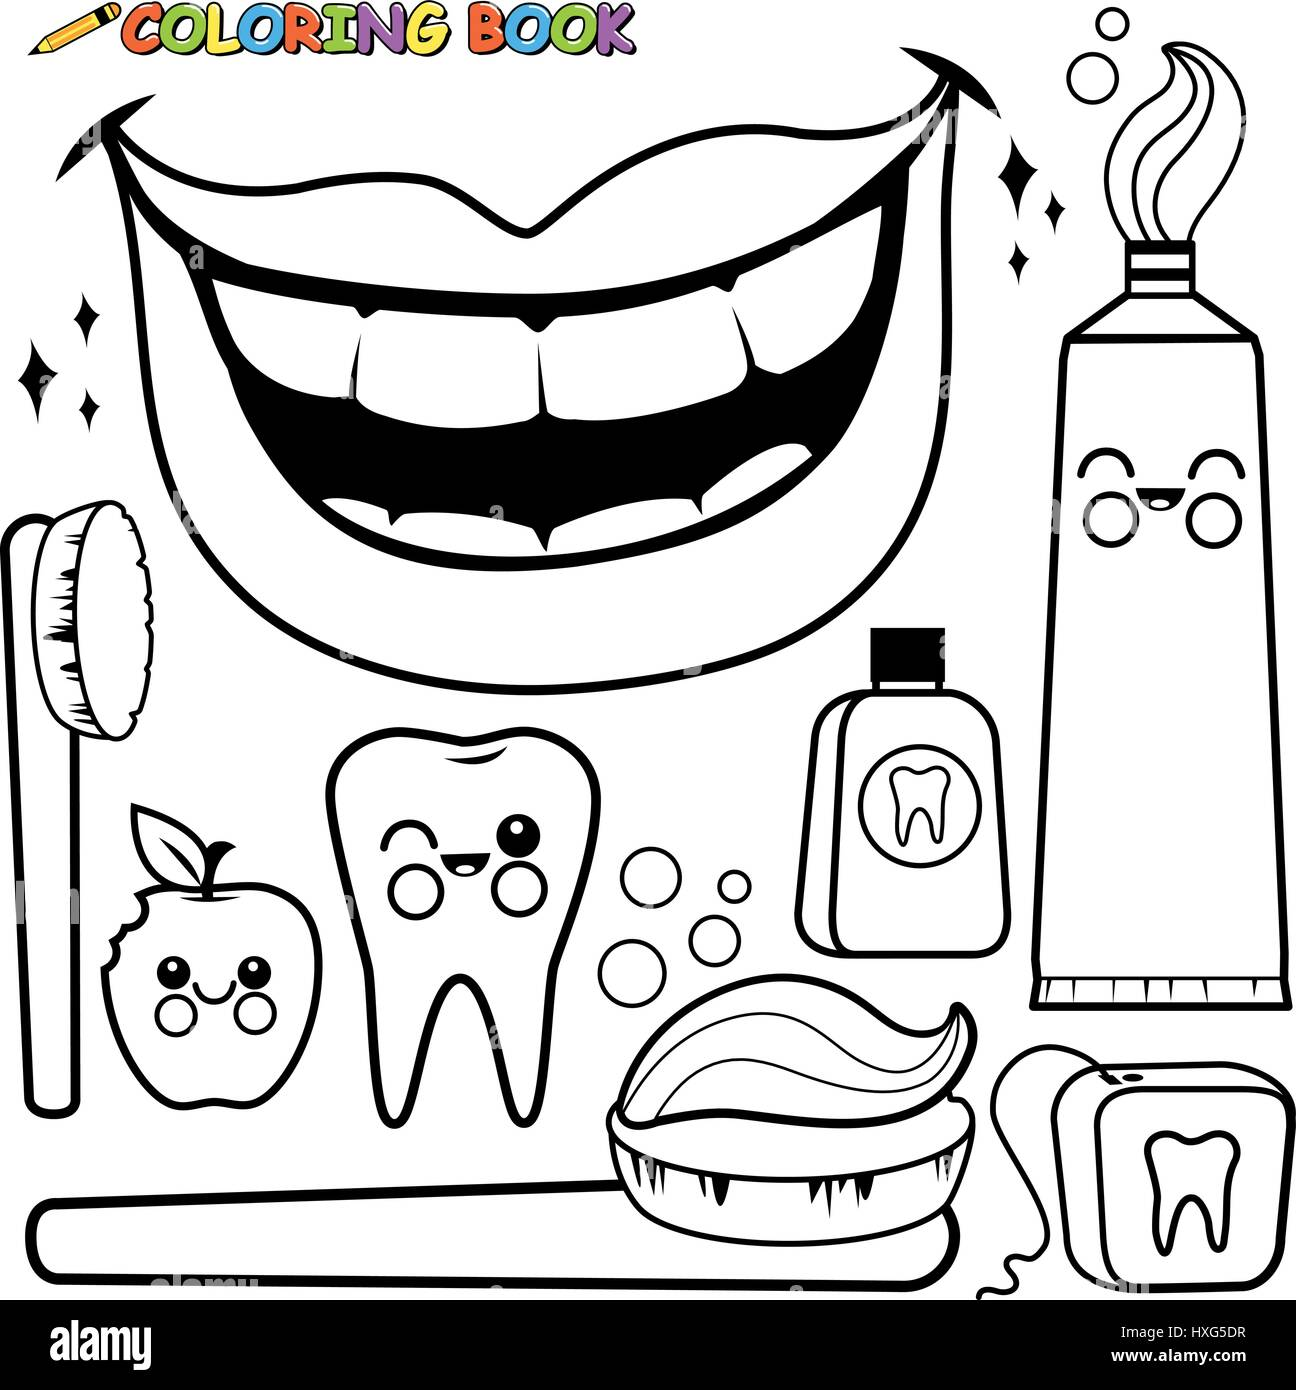 Dental Hygiene Drawing Stock Photos Amp Dental Hygiene Drawing Stock Images